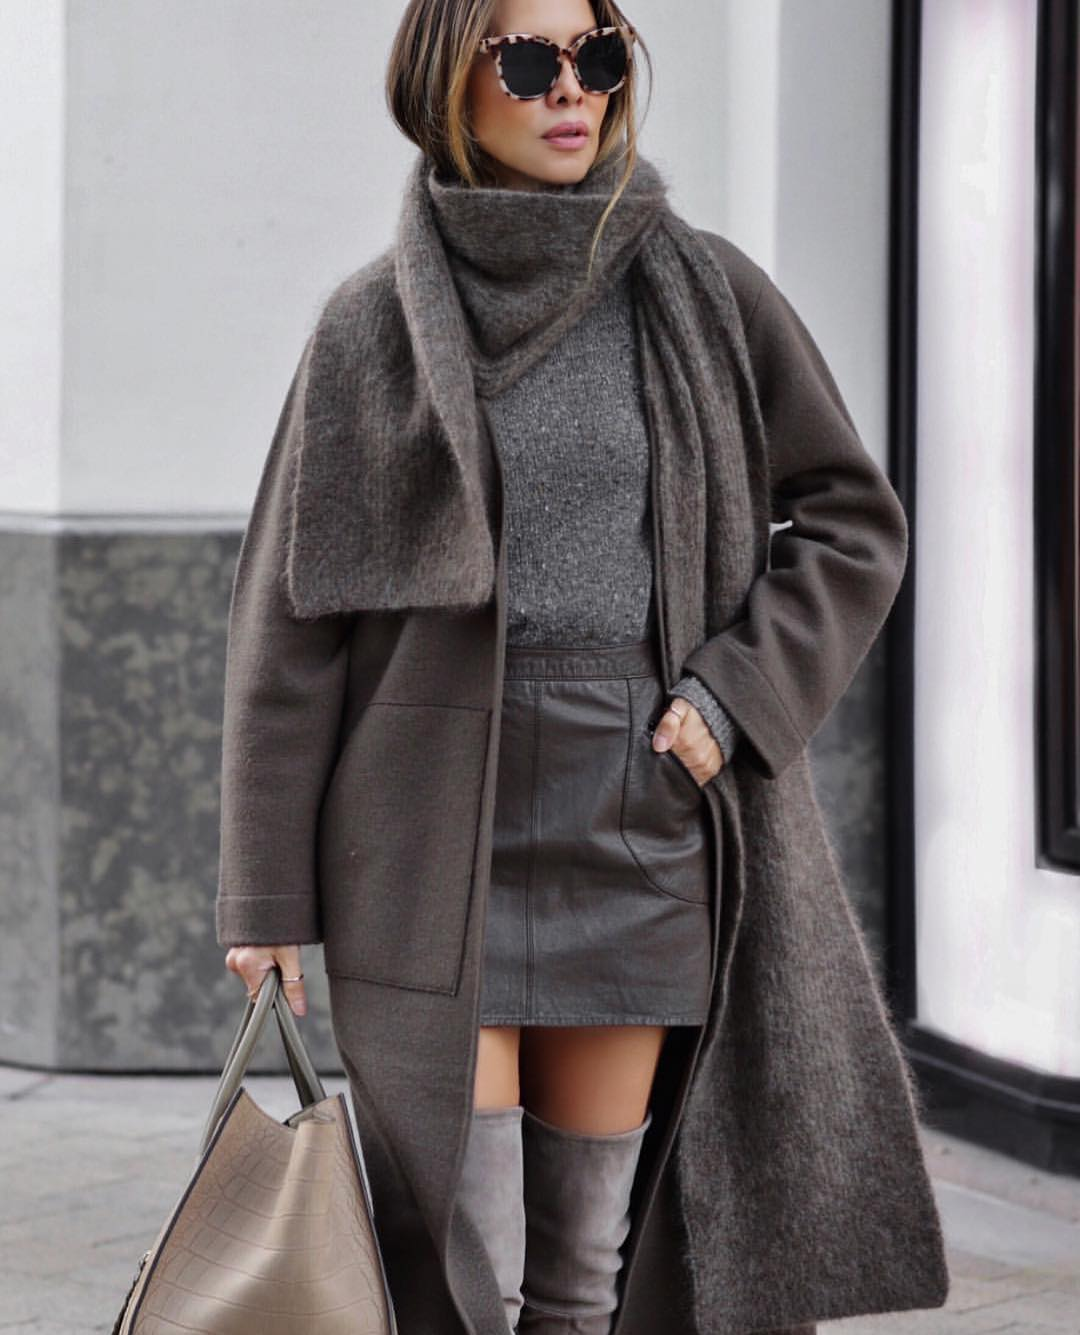 All Grey Layered Outfit Idea: Oversized Coat With Sweater And Leather Mini Skirt 2020